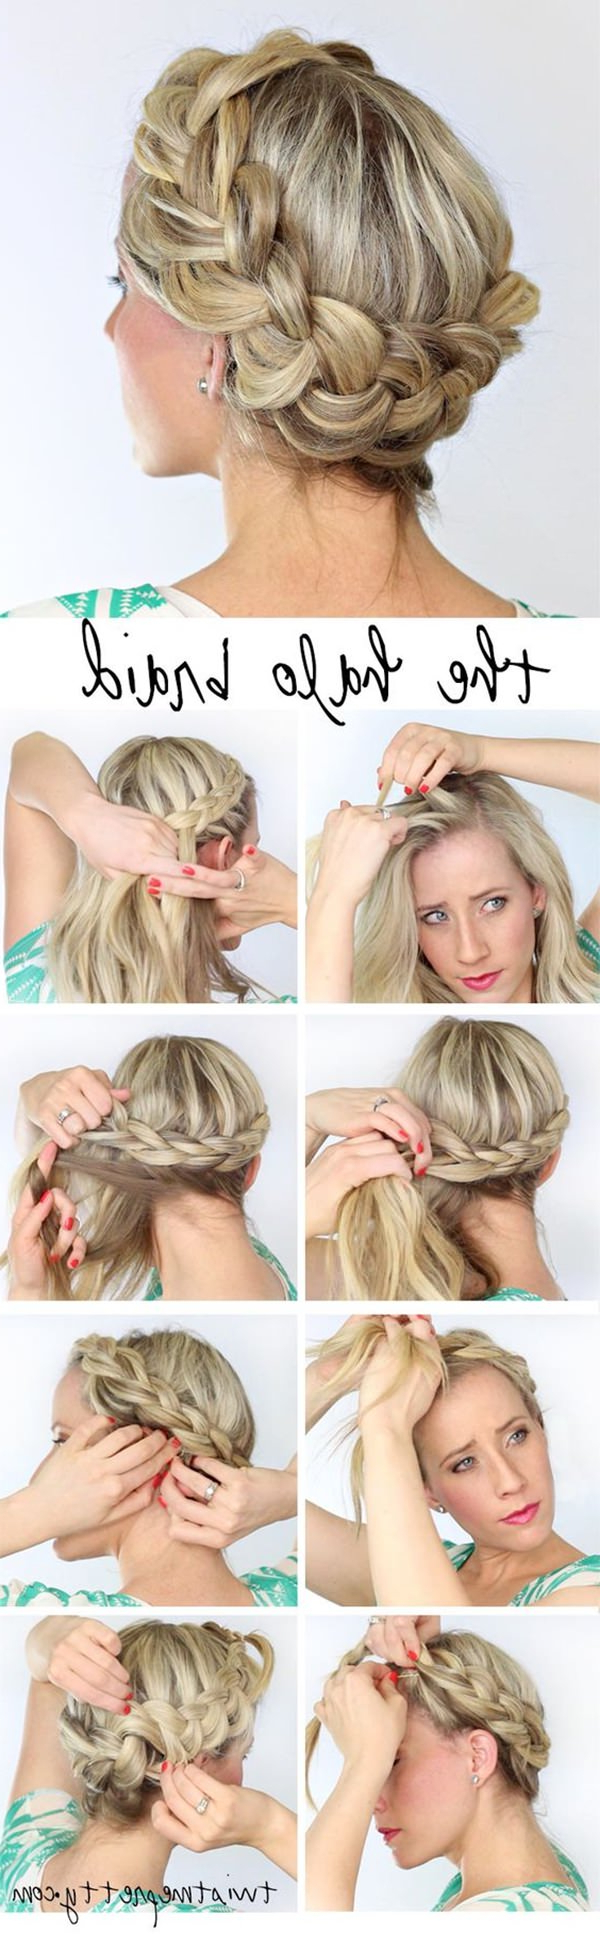 66 Stunning Halo Braid Ideas That You Will Love With Famous Braided Halo Hairstyles (View 17 of 20)